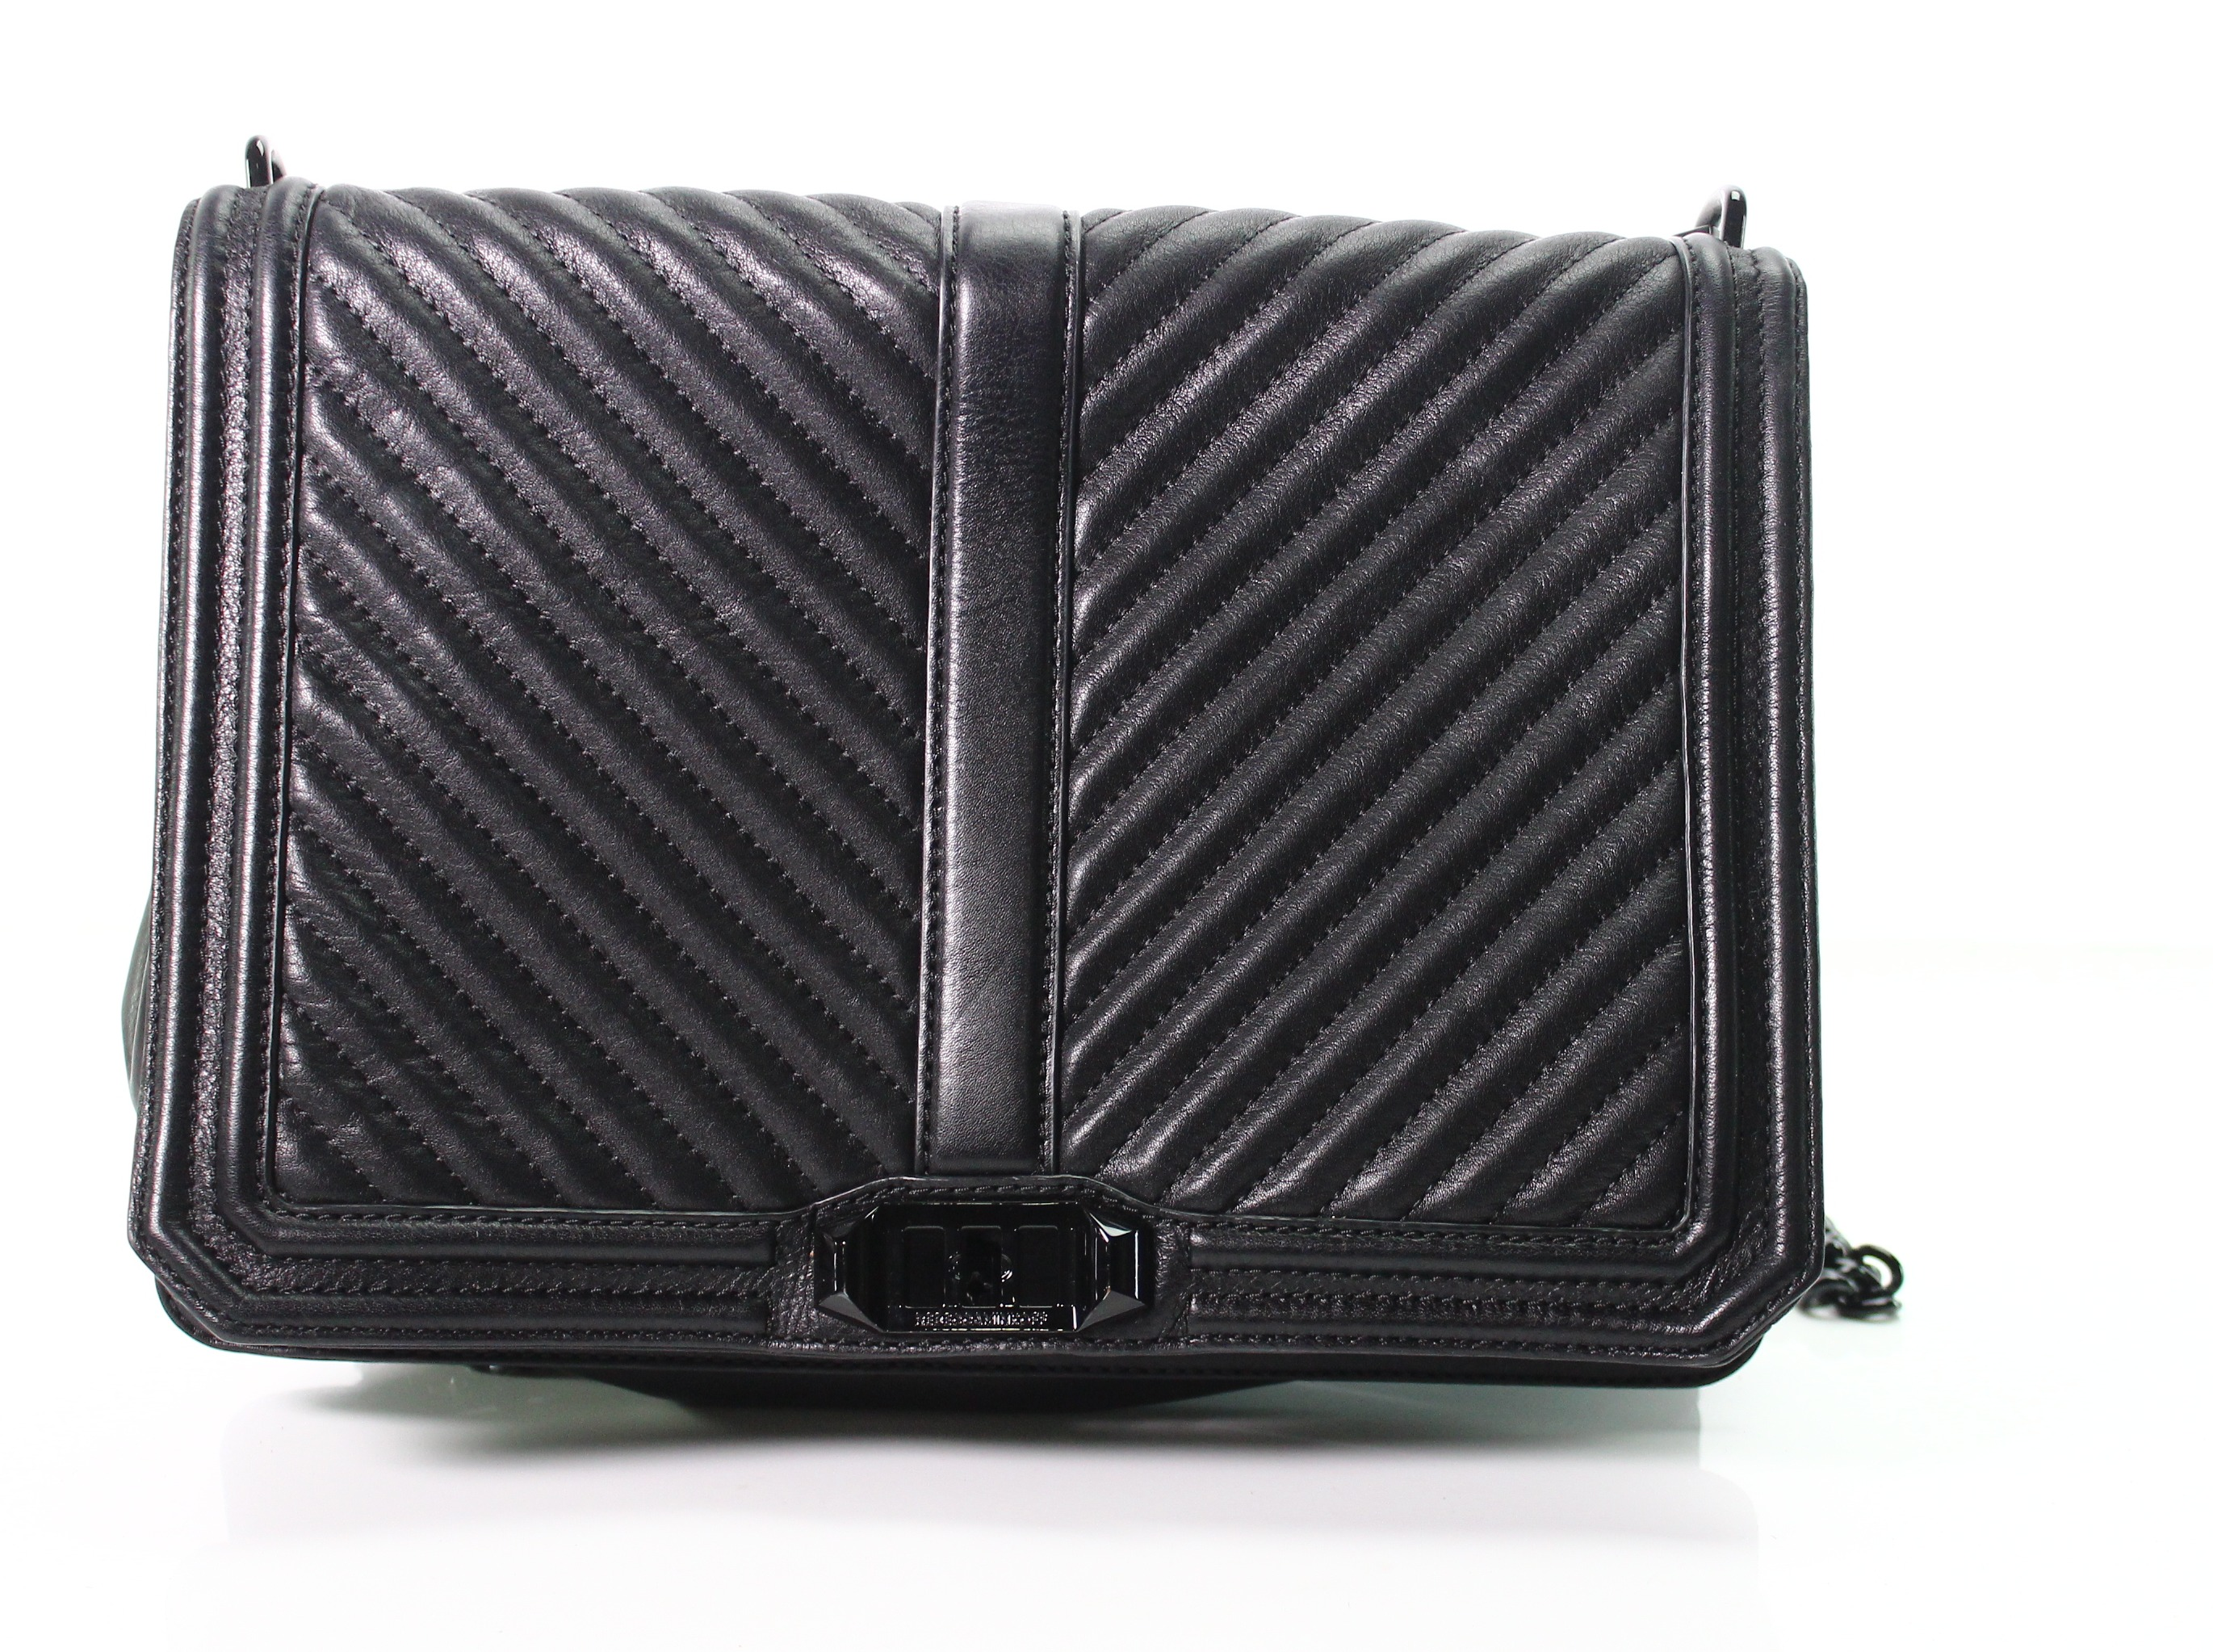 Rebecca Minkoff NEW Black Chevron Quilted Jumbo Crossbody Leather Bag  355-   023 35811b4b59072